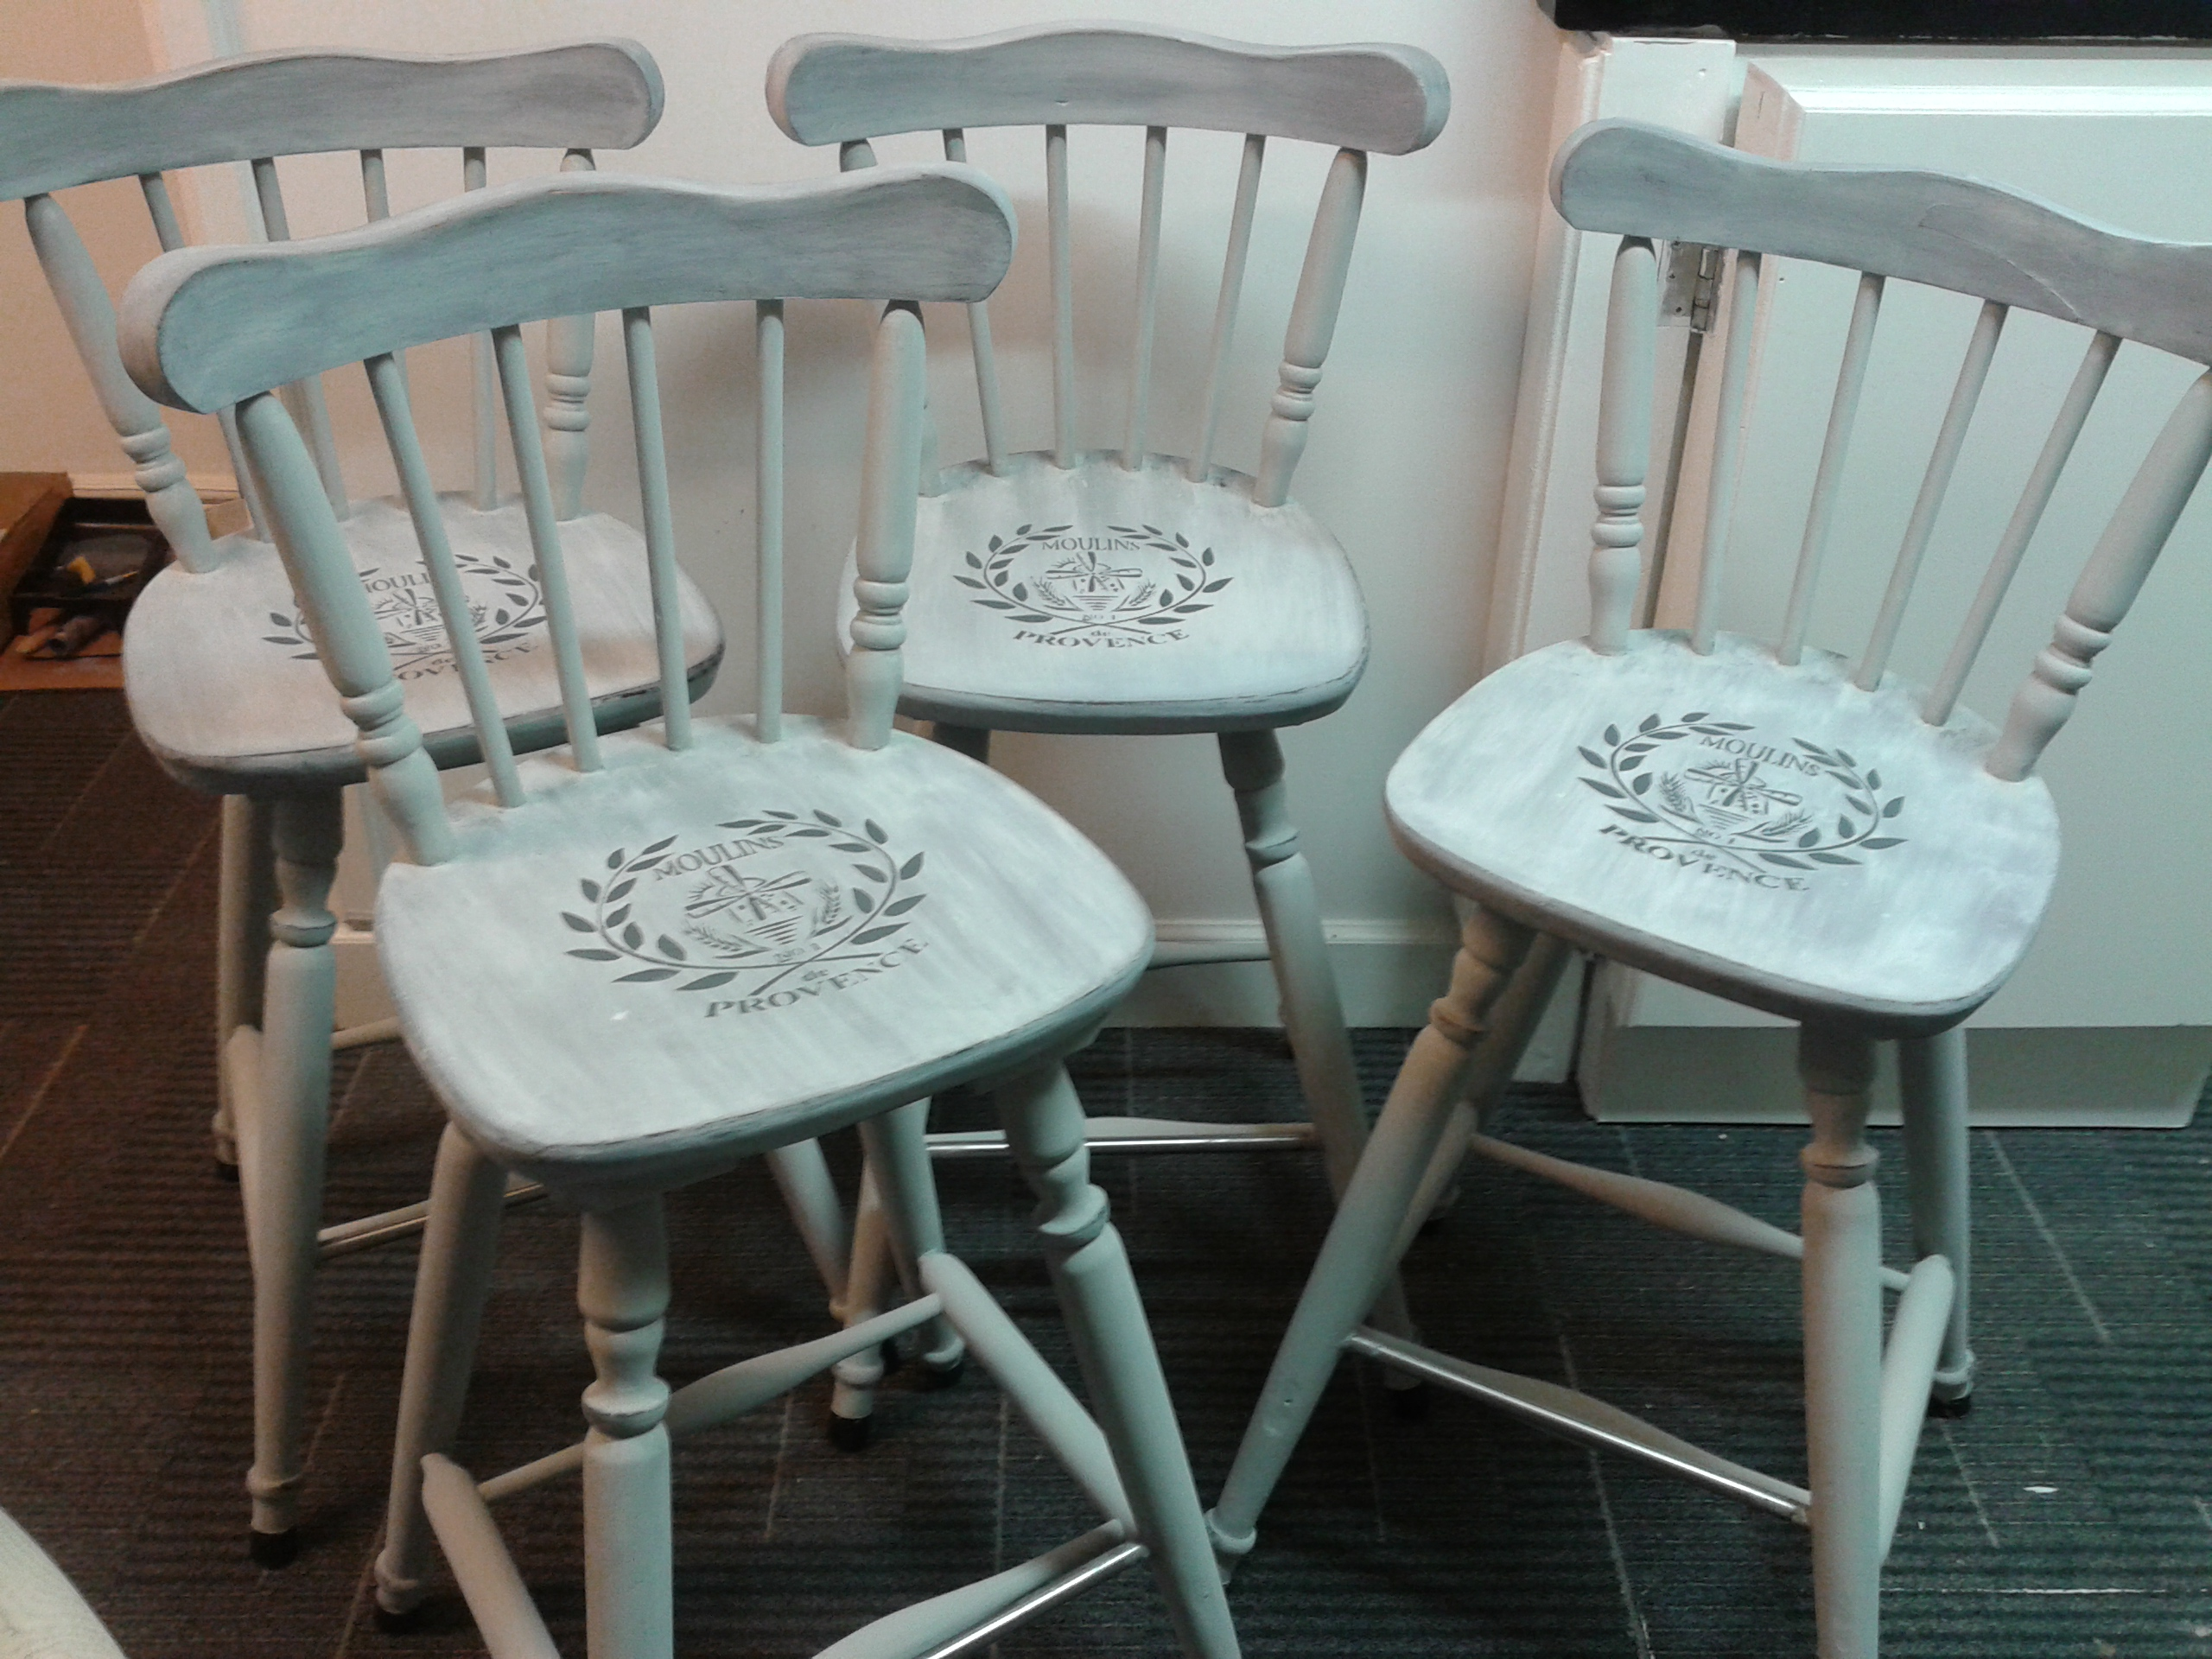 set of 4 kitchen/bar chairs